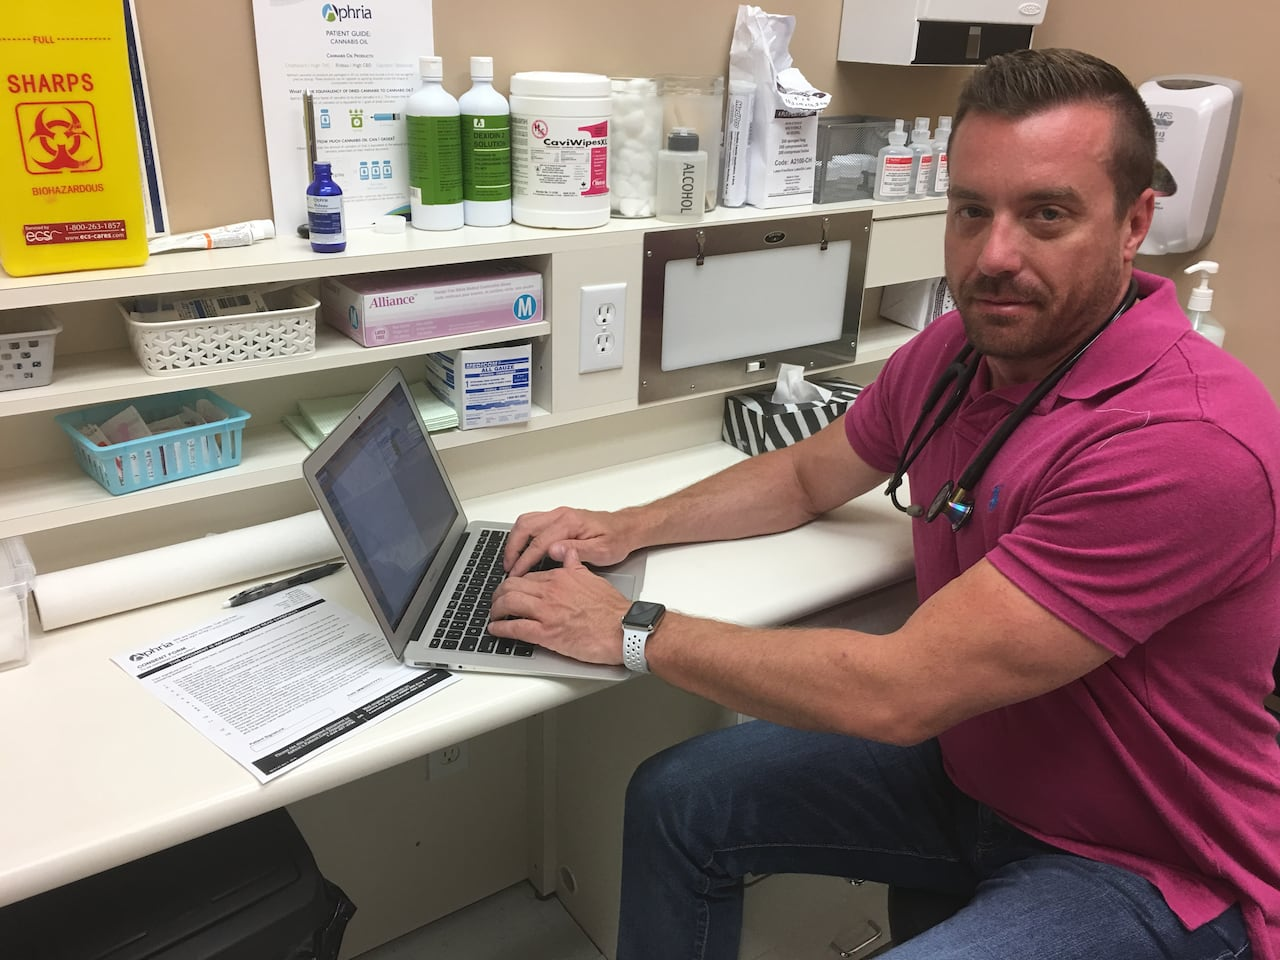 Doctor urges weed-wary colleagues to prescribe pot, not opioids for